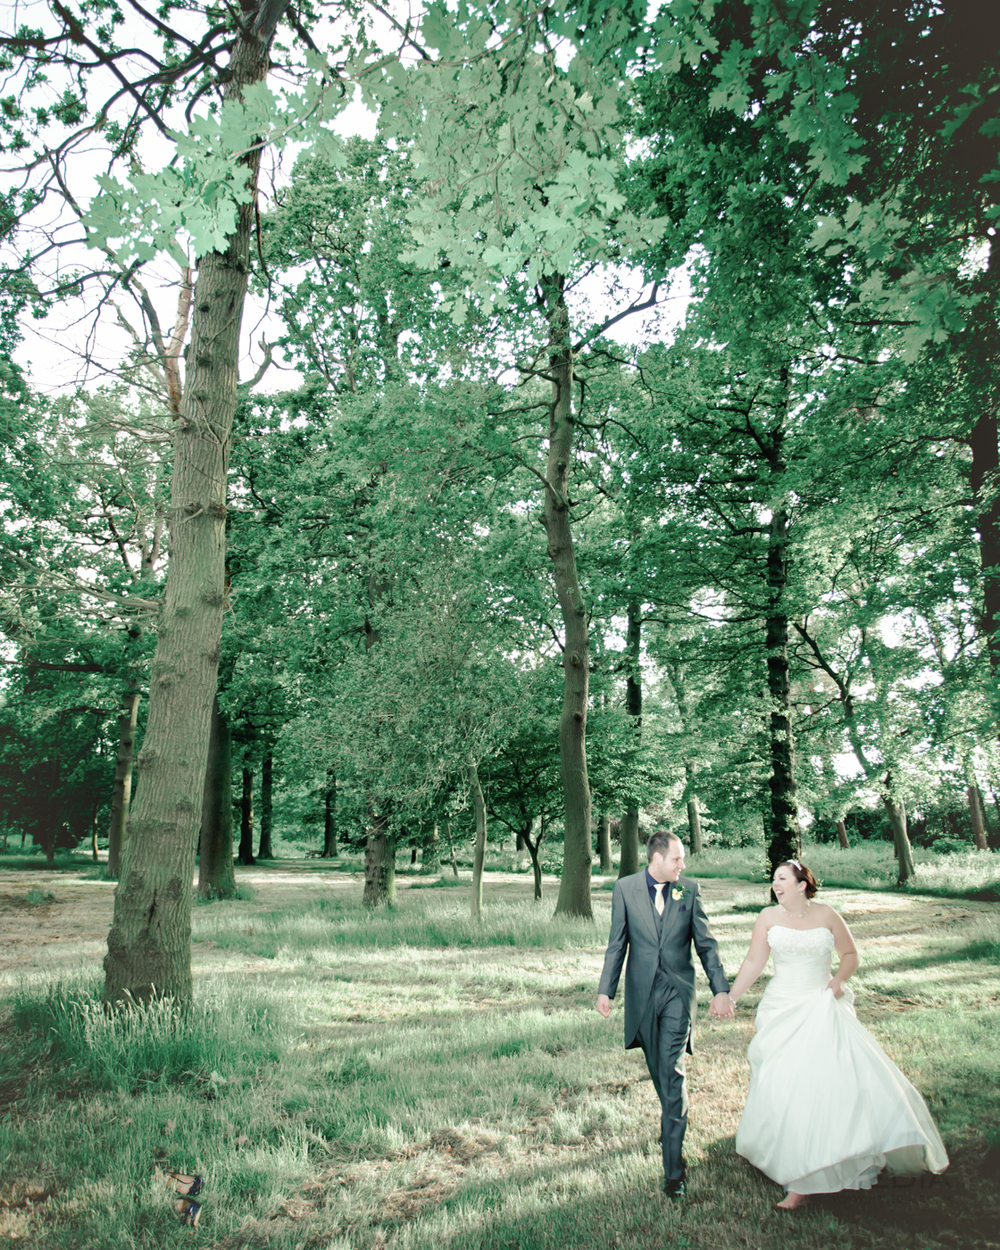 564 - Chris and Natalies Wedding (MAIN) - DO NOT SHARE THIS IMAGES ONLINE -0895.JPG